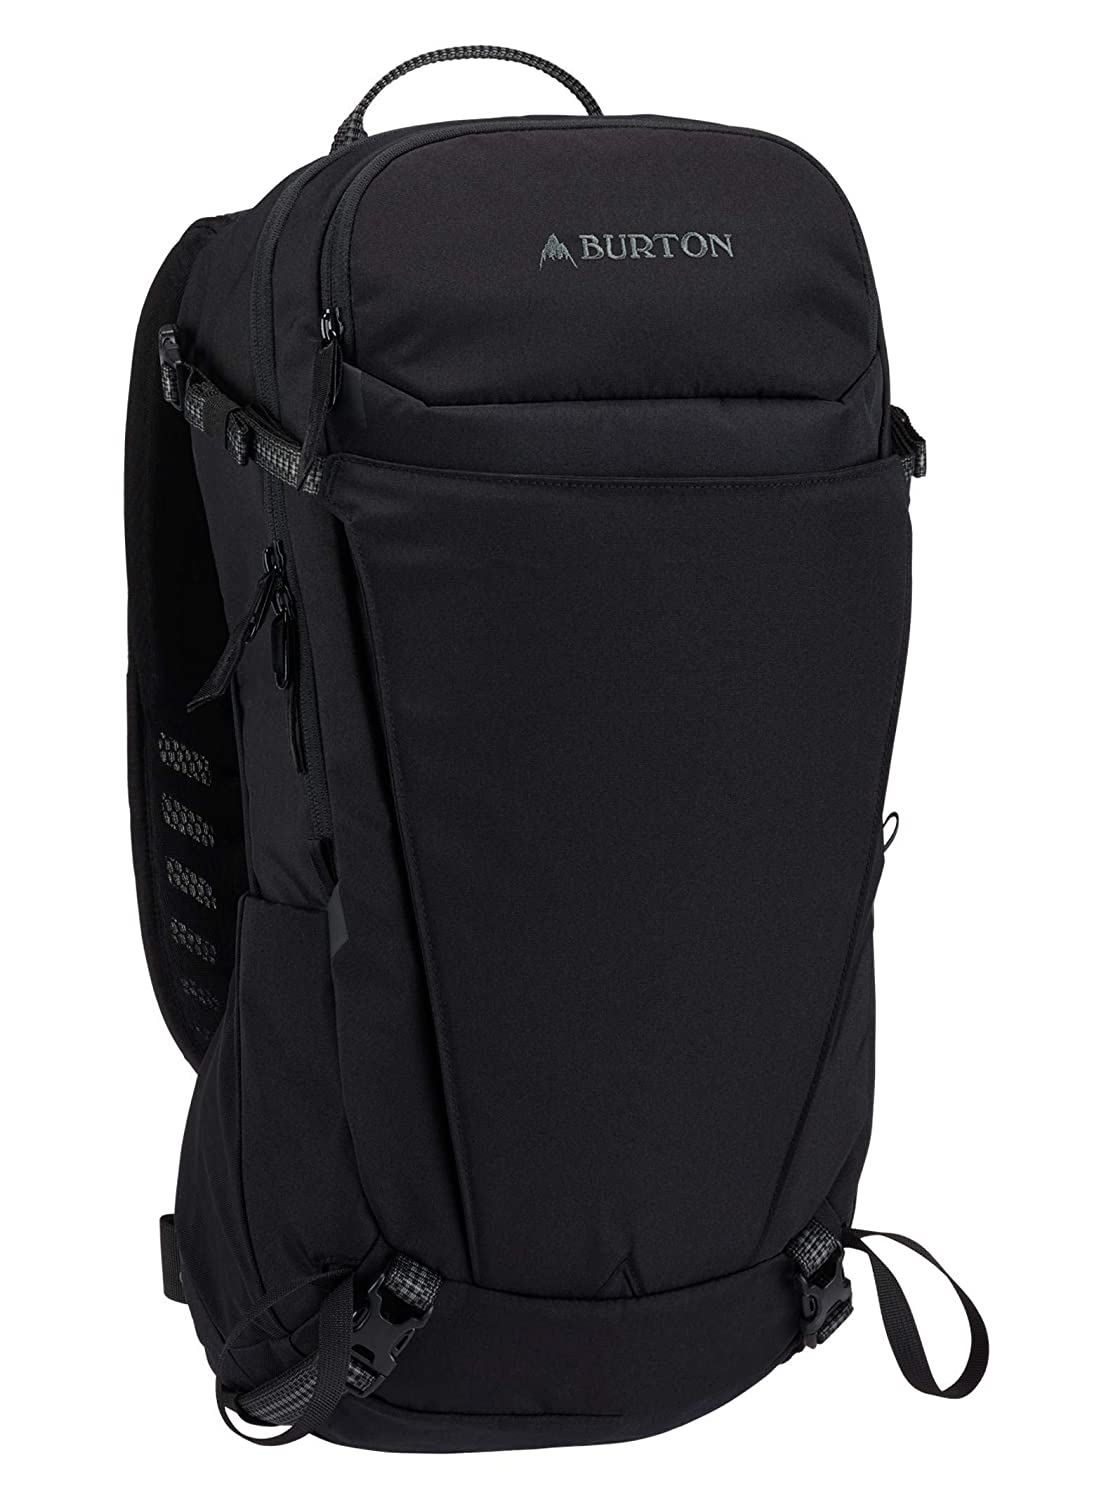 Burton Multi-Season Multi-Season Skyward Cordura 18L Hiking B07R3Y4ZGT/Backcountry Backpack, Black Cordura [並行輸入品] B07R3Y4ZGT, 北檜山町:b1019f86 --- anime-portal.club